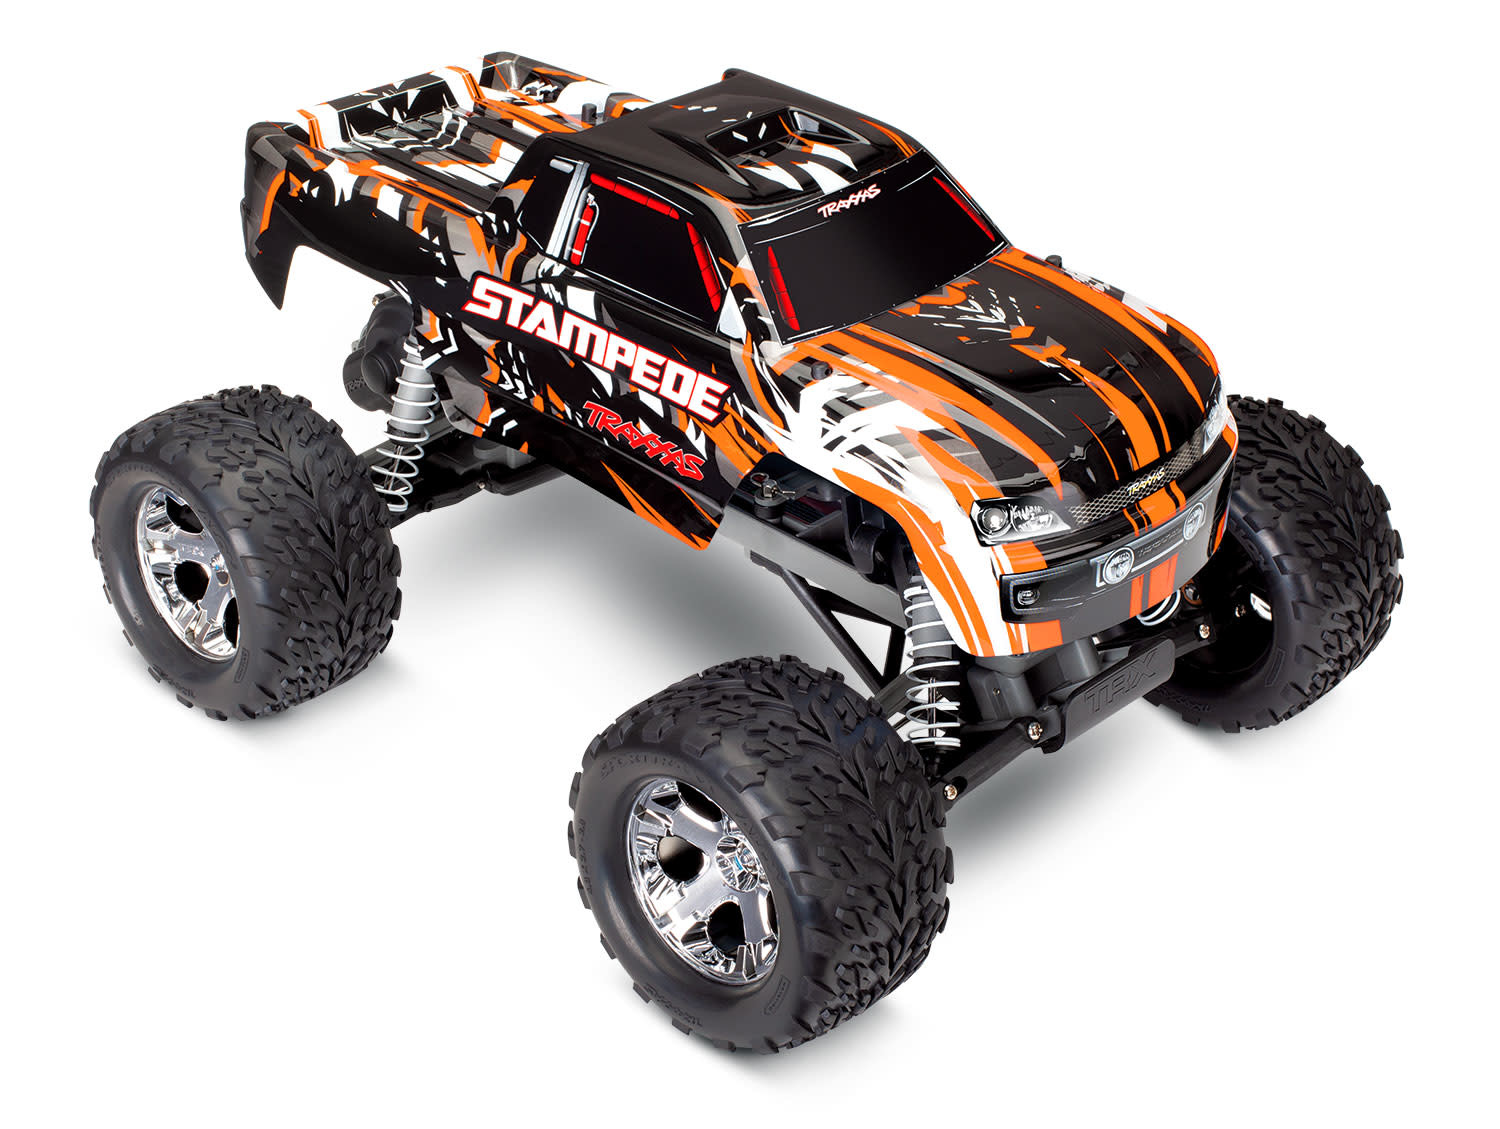 Traxxas Stampede XL-5 TQ (incl battery/charger), Orange TRX36054-1O-4